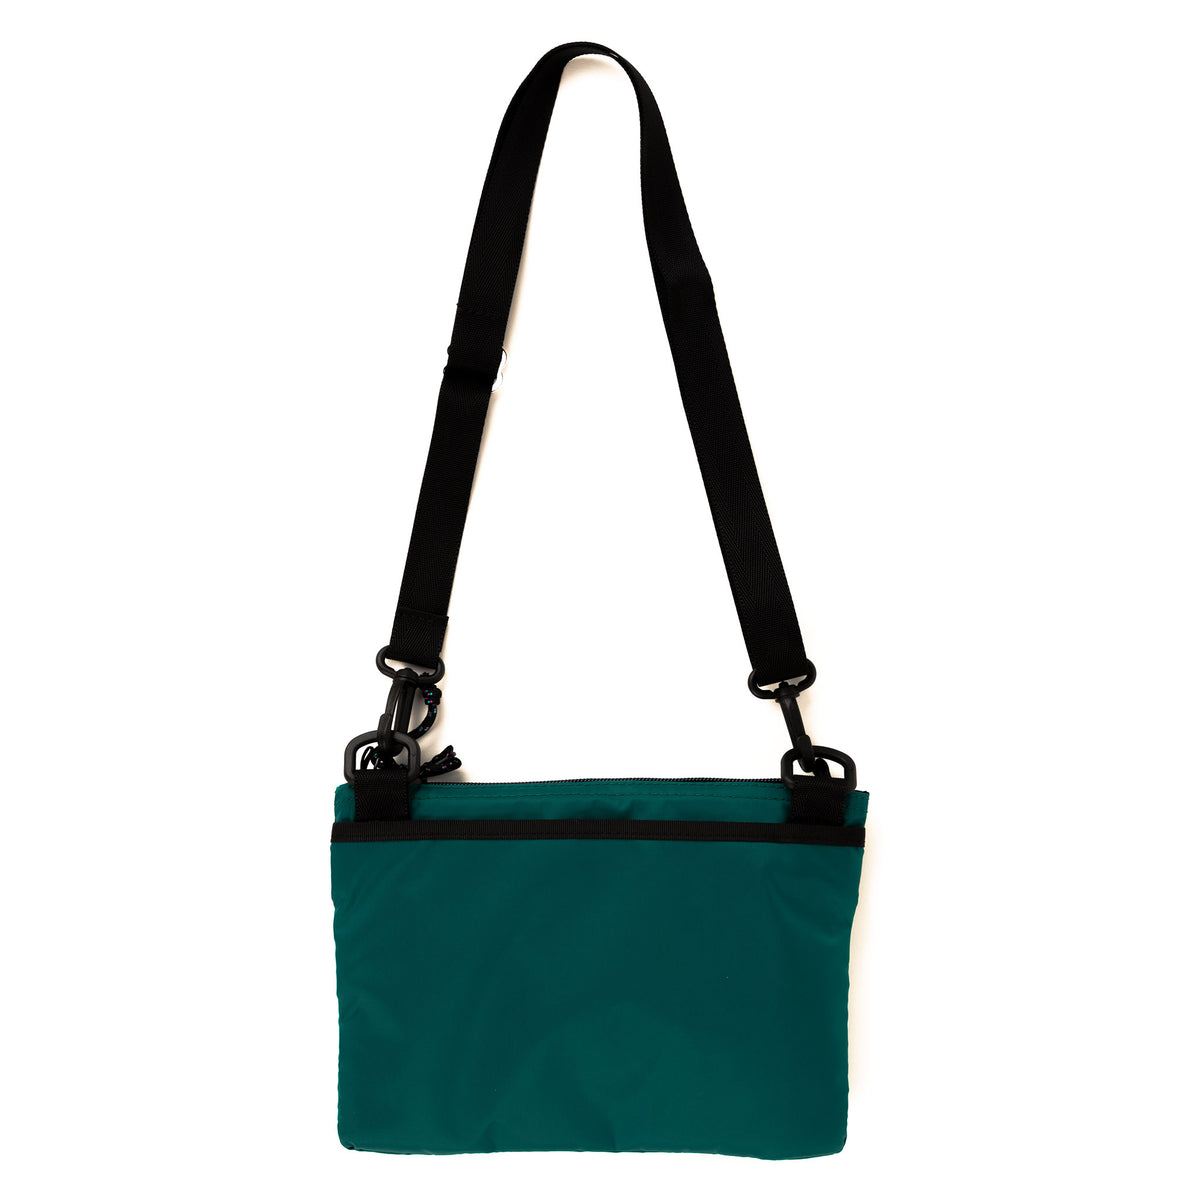 Active Sacoche (Medium) - Teal